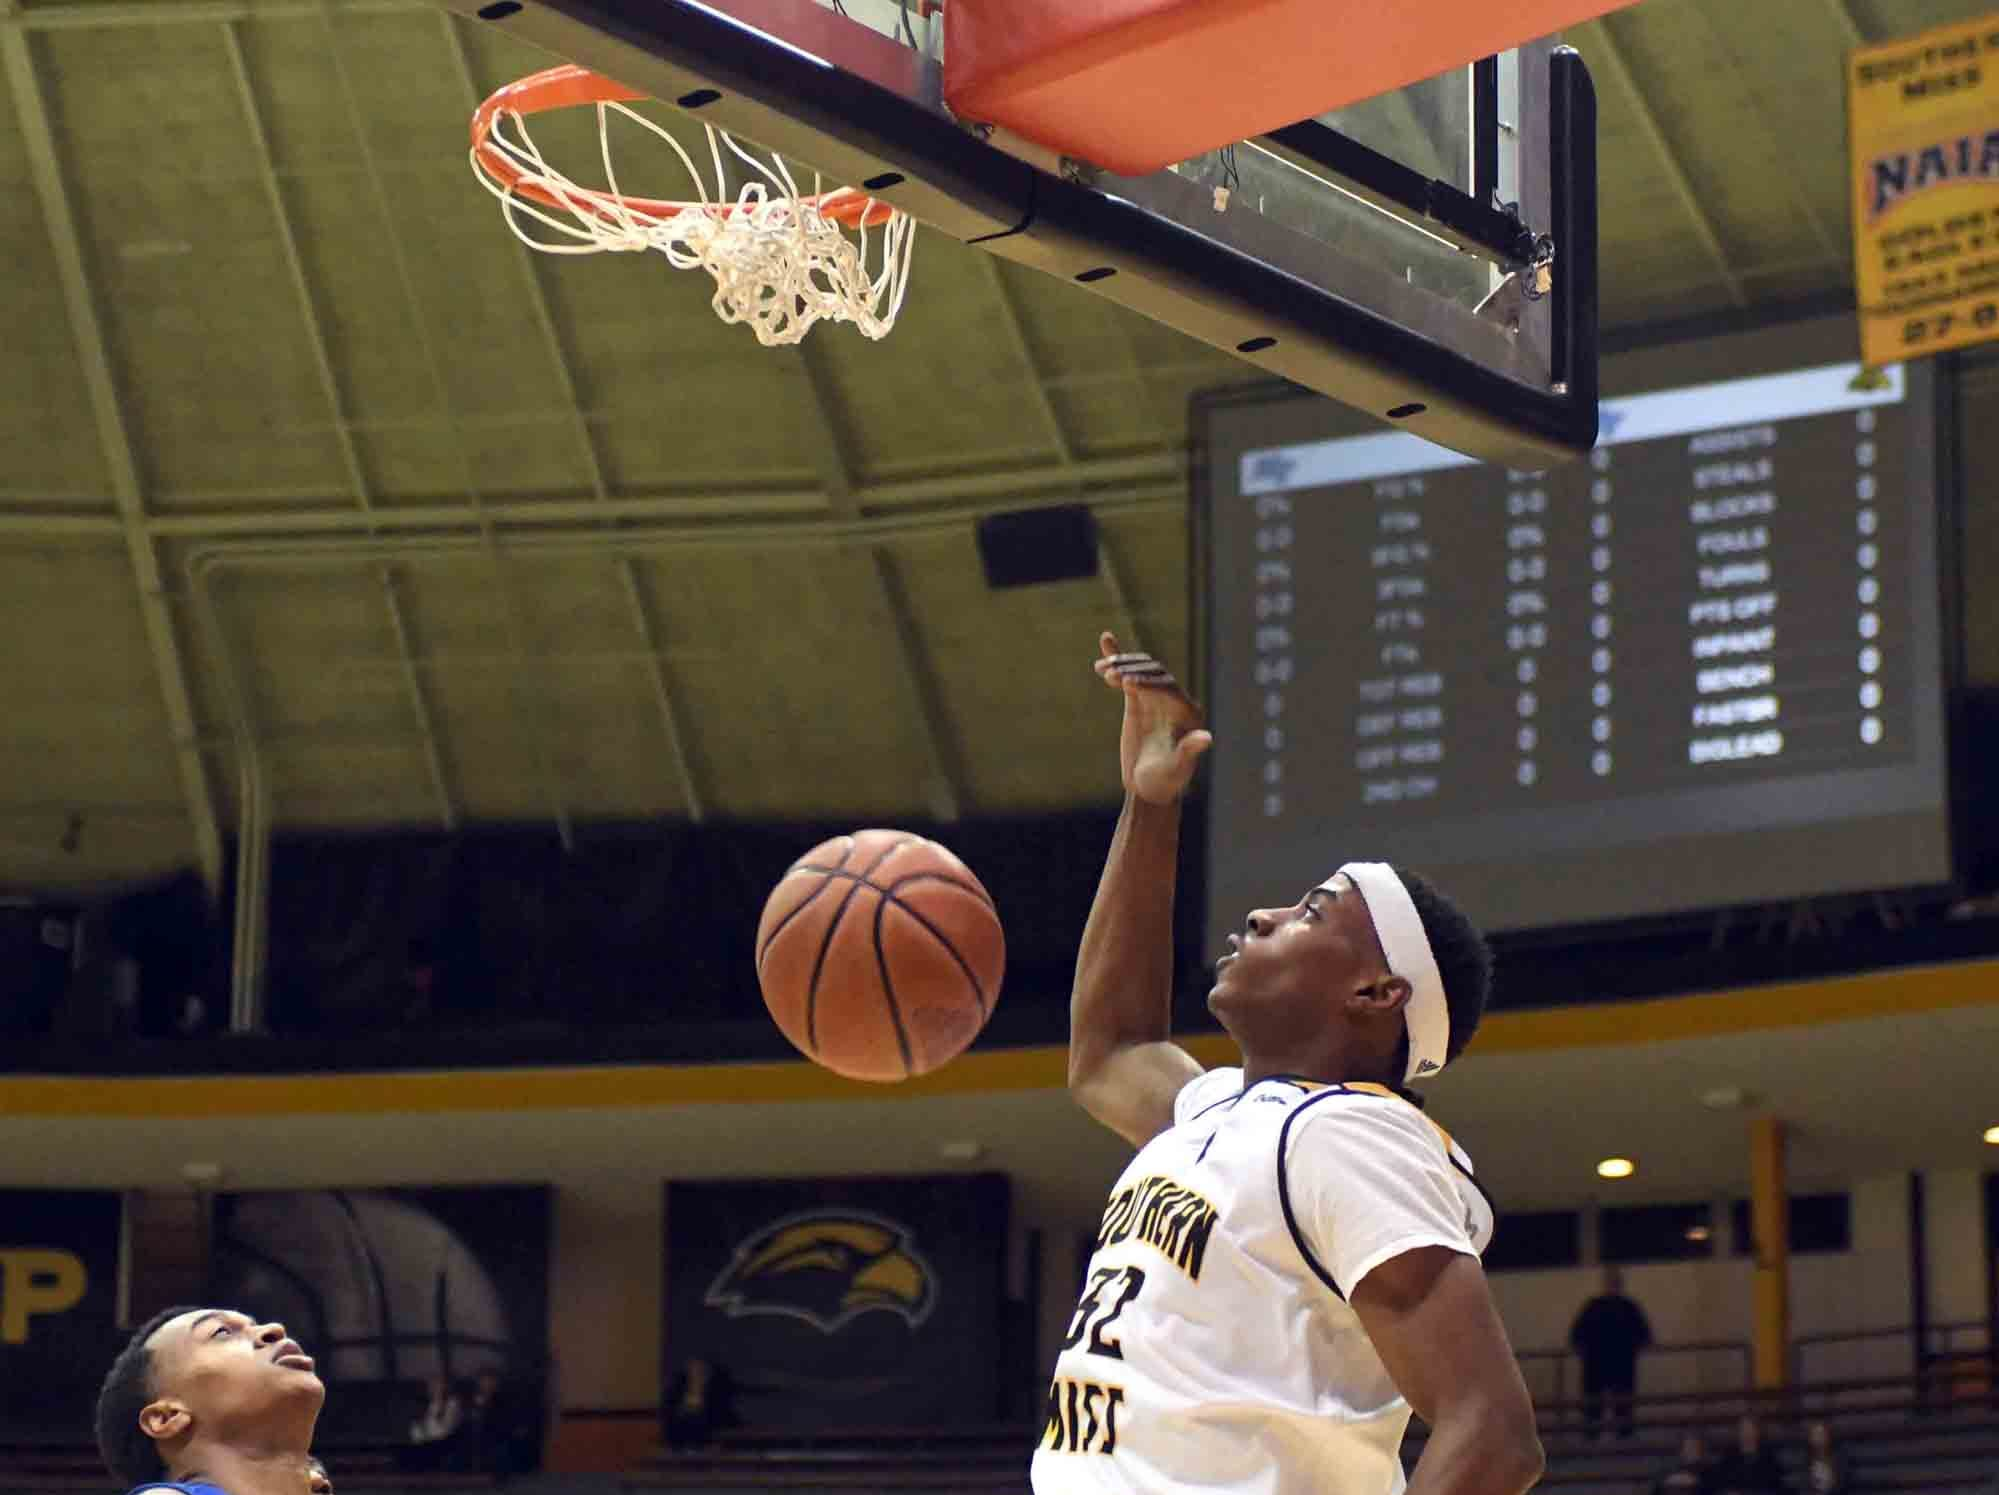 Southern Miss forward Leonard Harper-Baker dunks the ball in a game against Middle Tennessee in Reed Green Coliseum on Thursday, January 10, 2019.